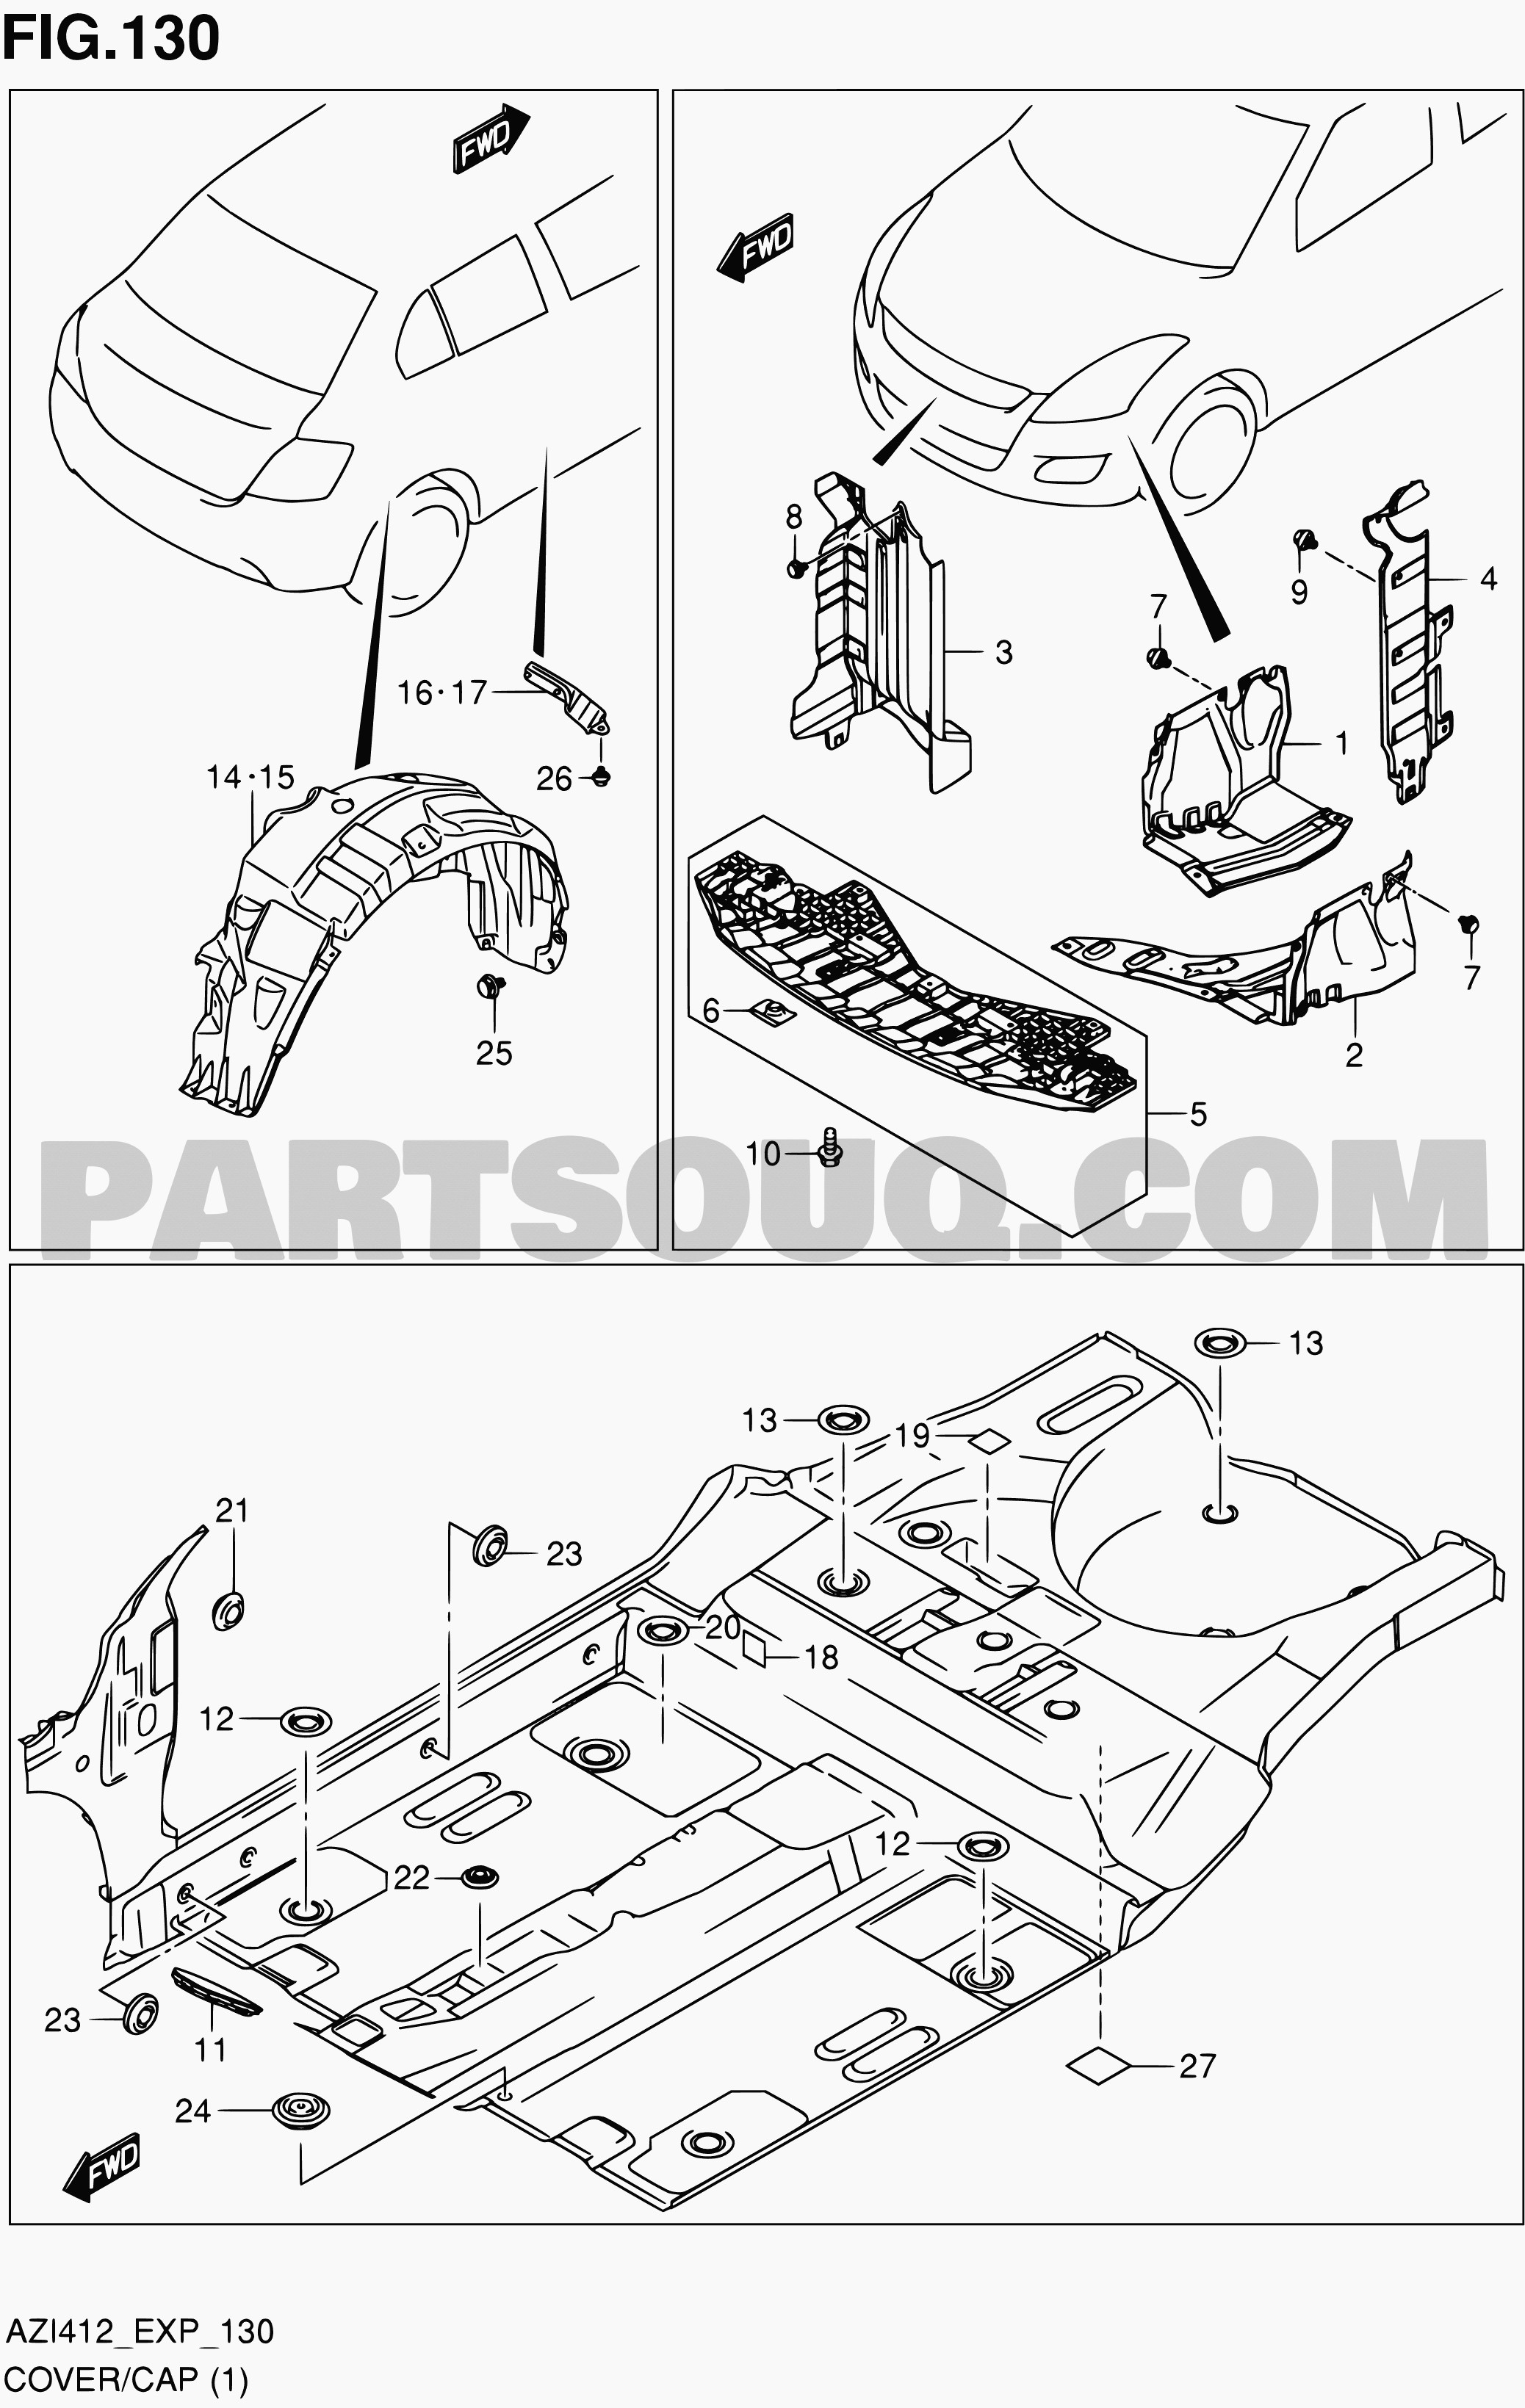 Diagram of car parts in spanish 130 cover cap 4dr of diagram of car parts in